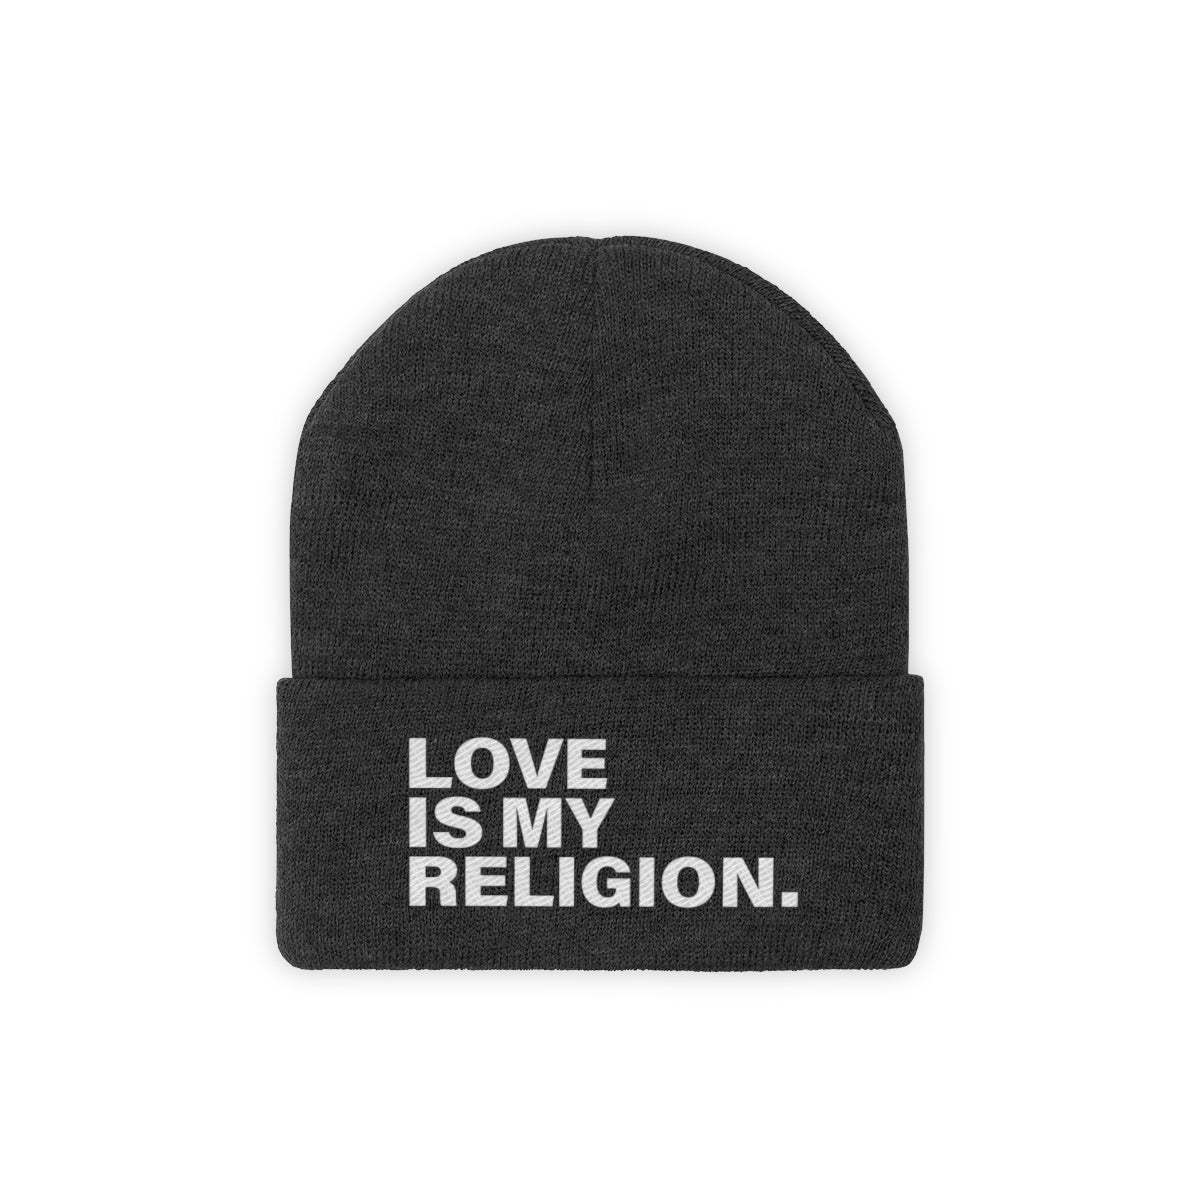 Love Is My Religion Knit Beanie